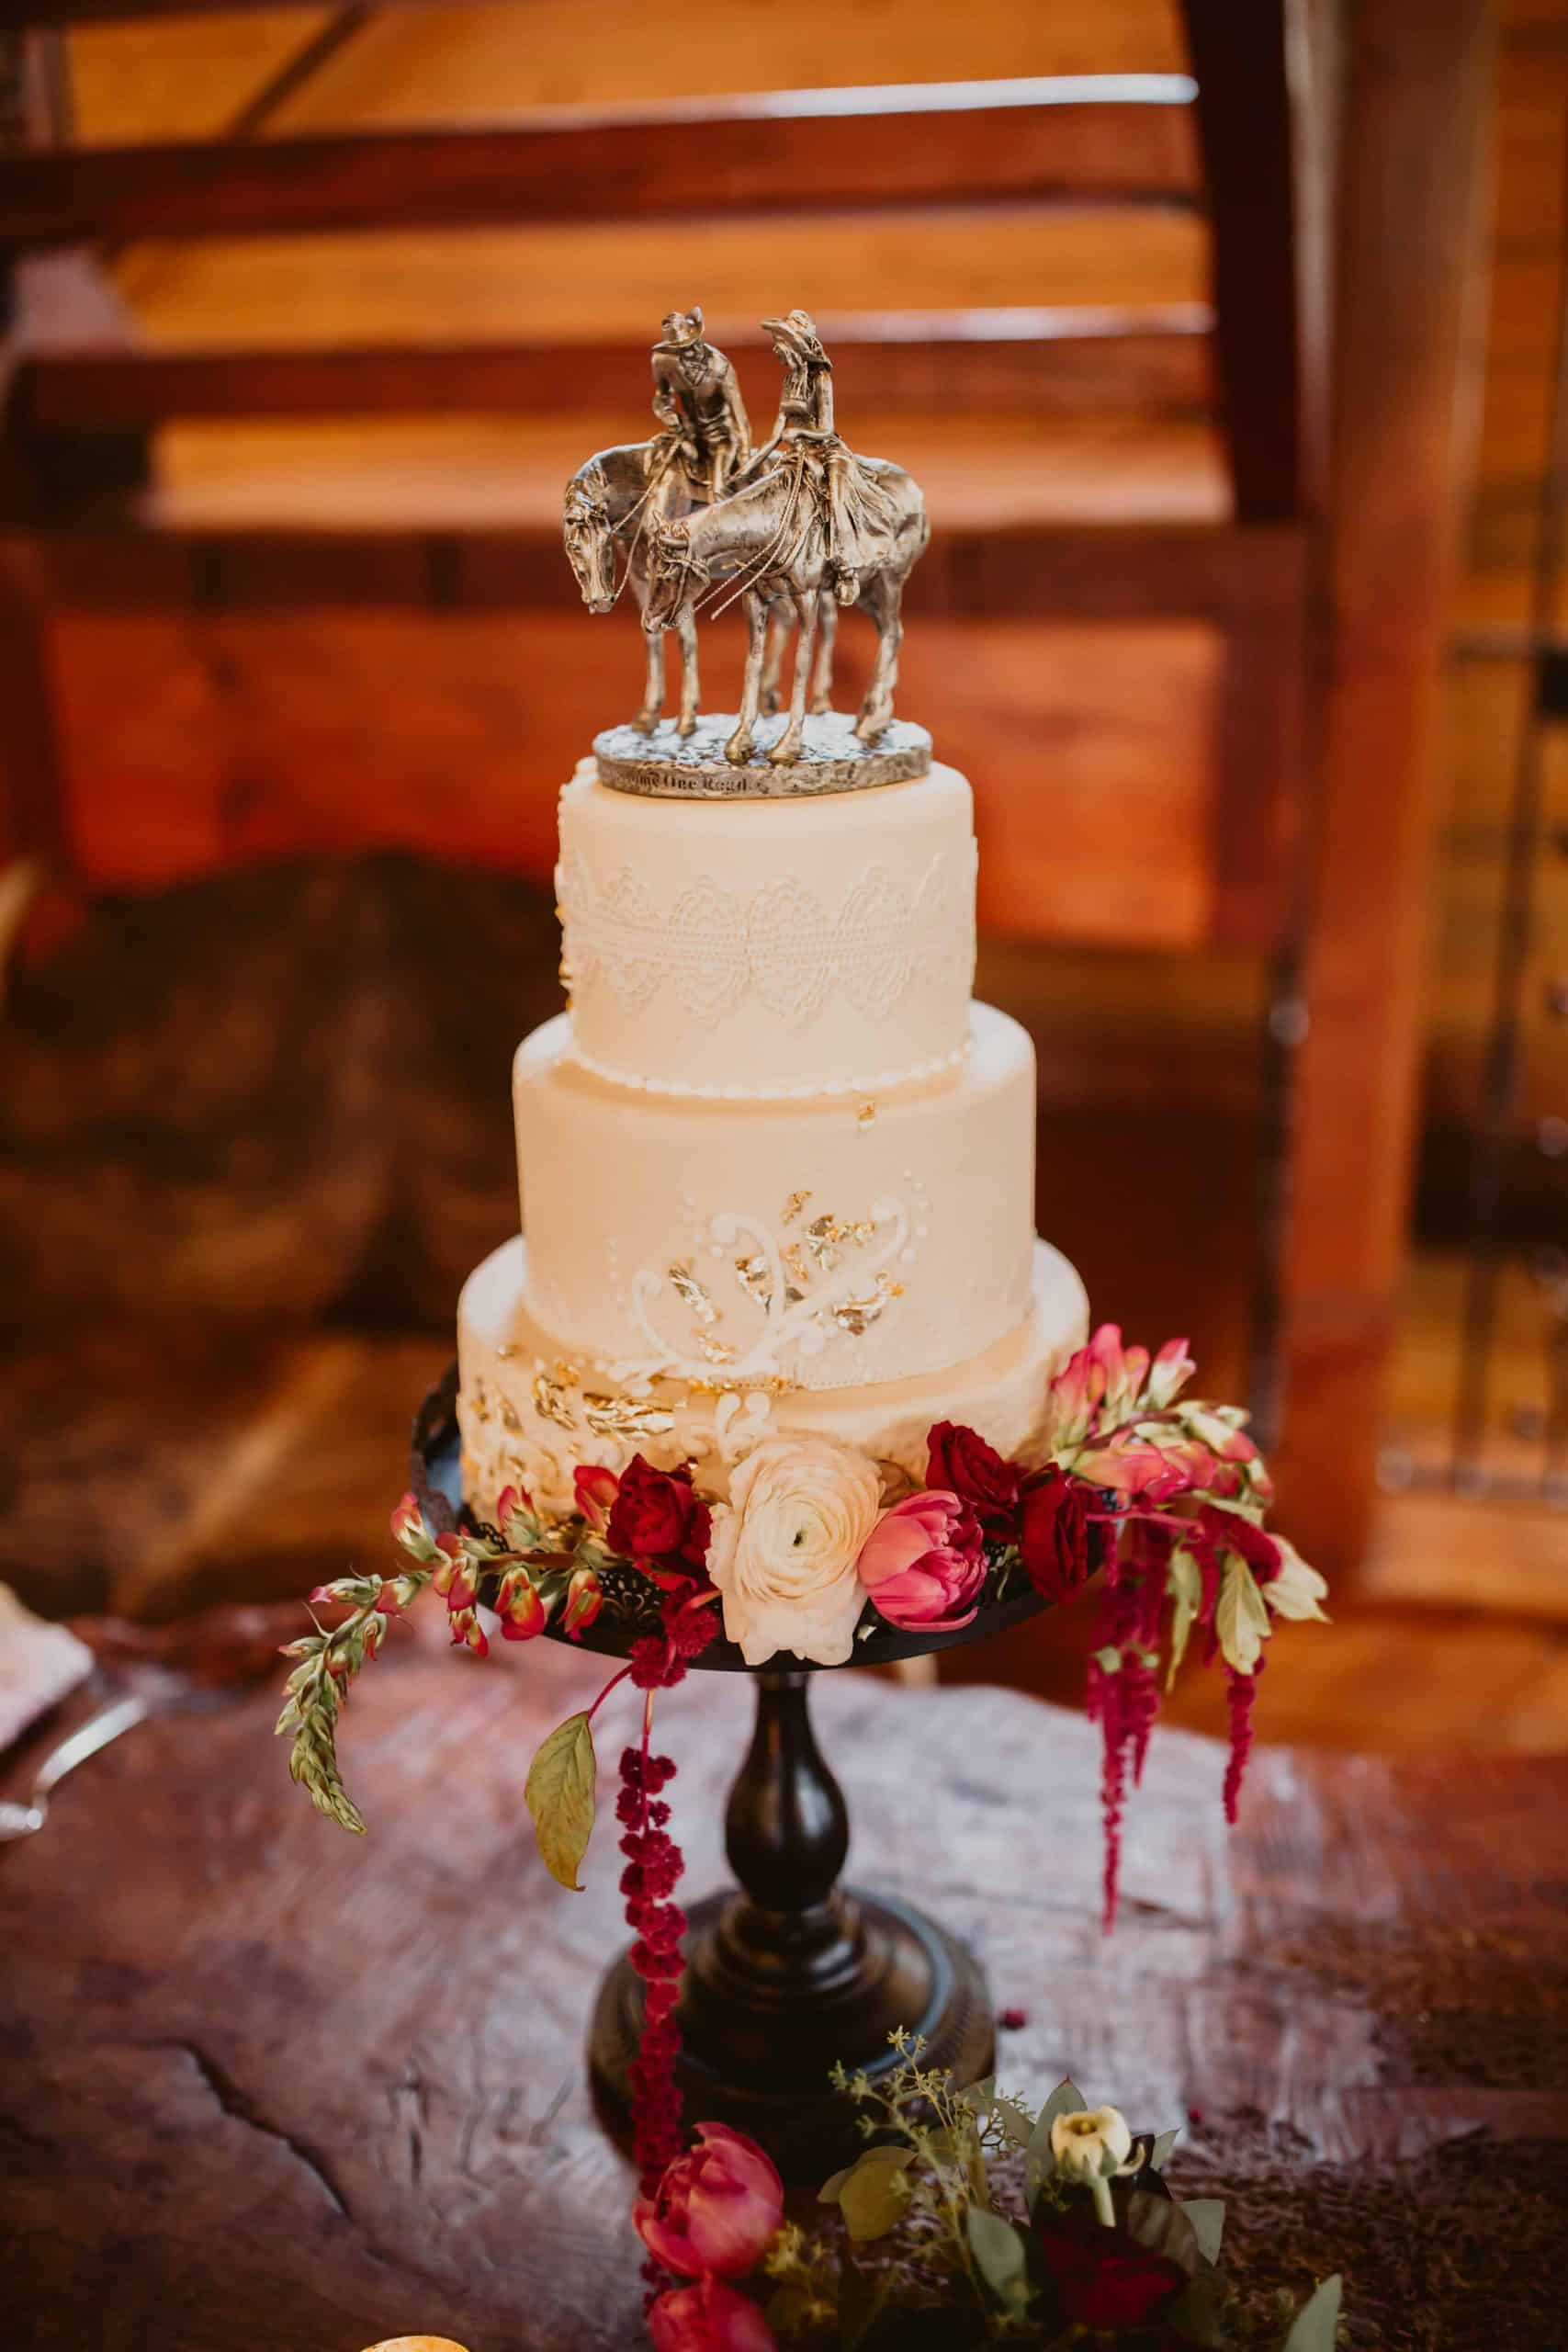 The Makery Cake Company Western Theme Wedding Cake